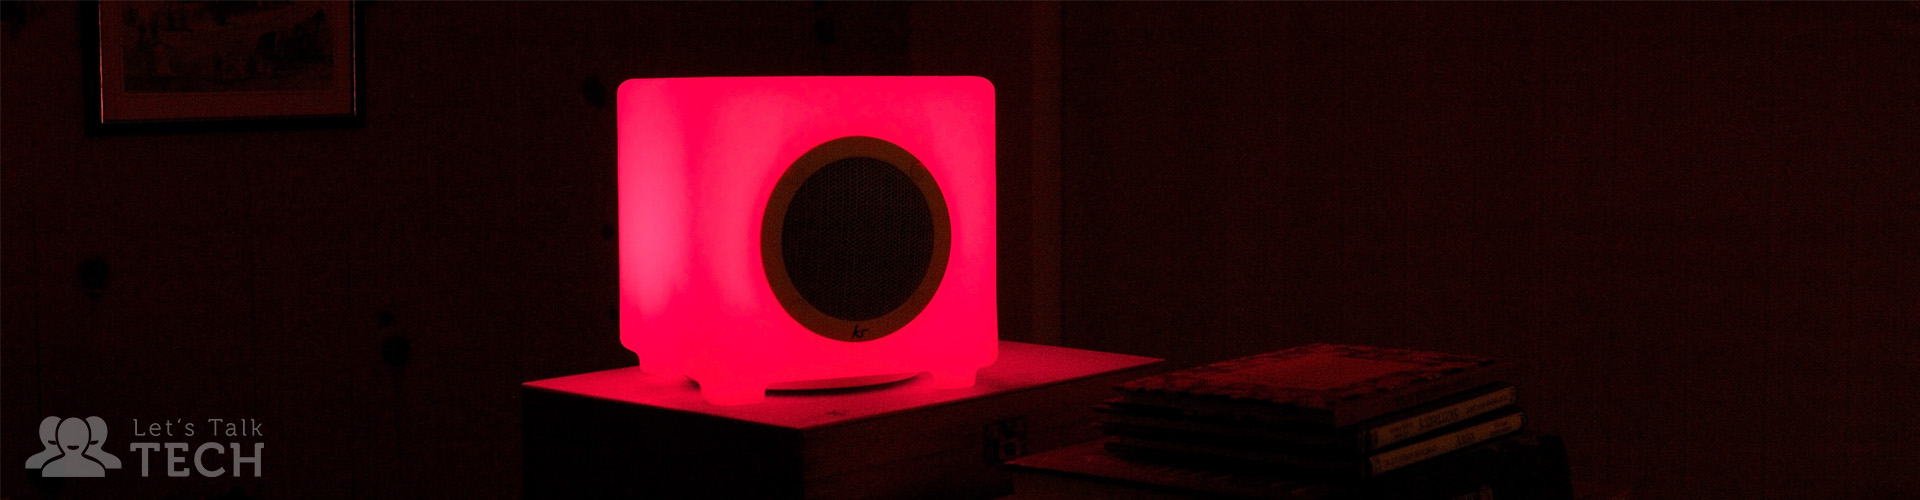 Kitsound Glow Speaker Review: Funky Colours, Lacklustre Build Quality